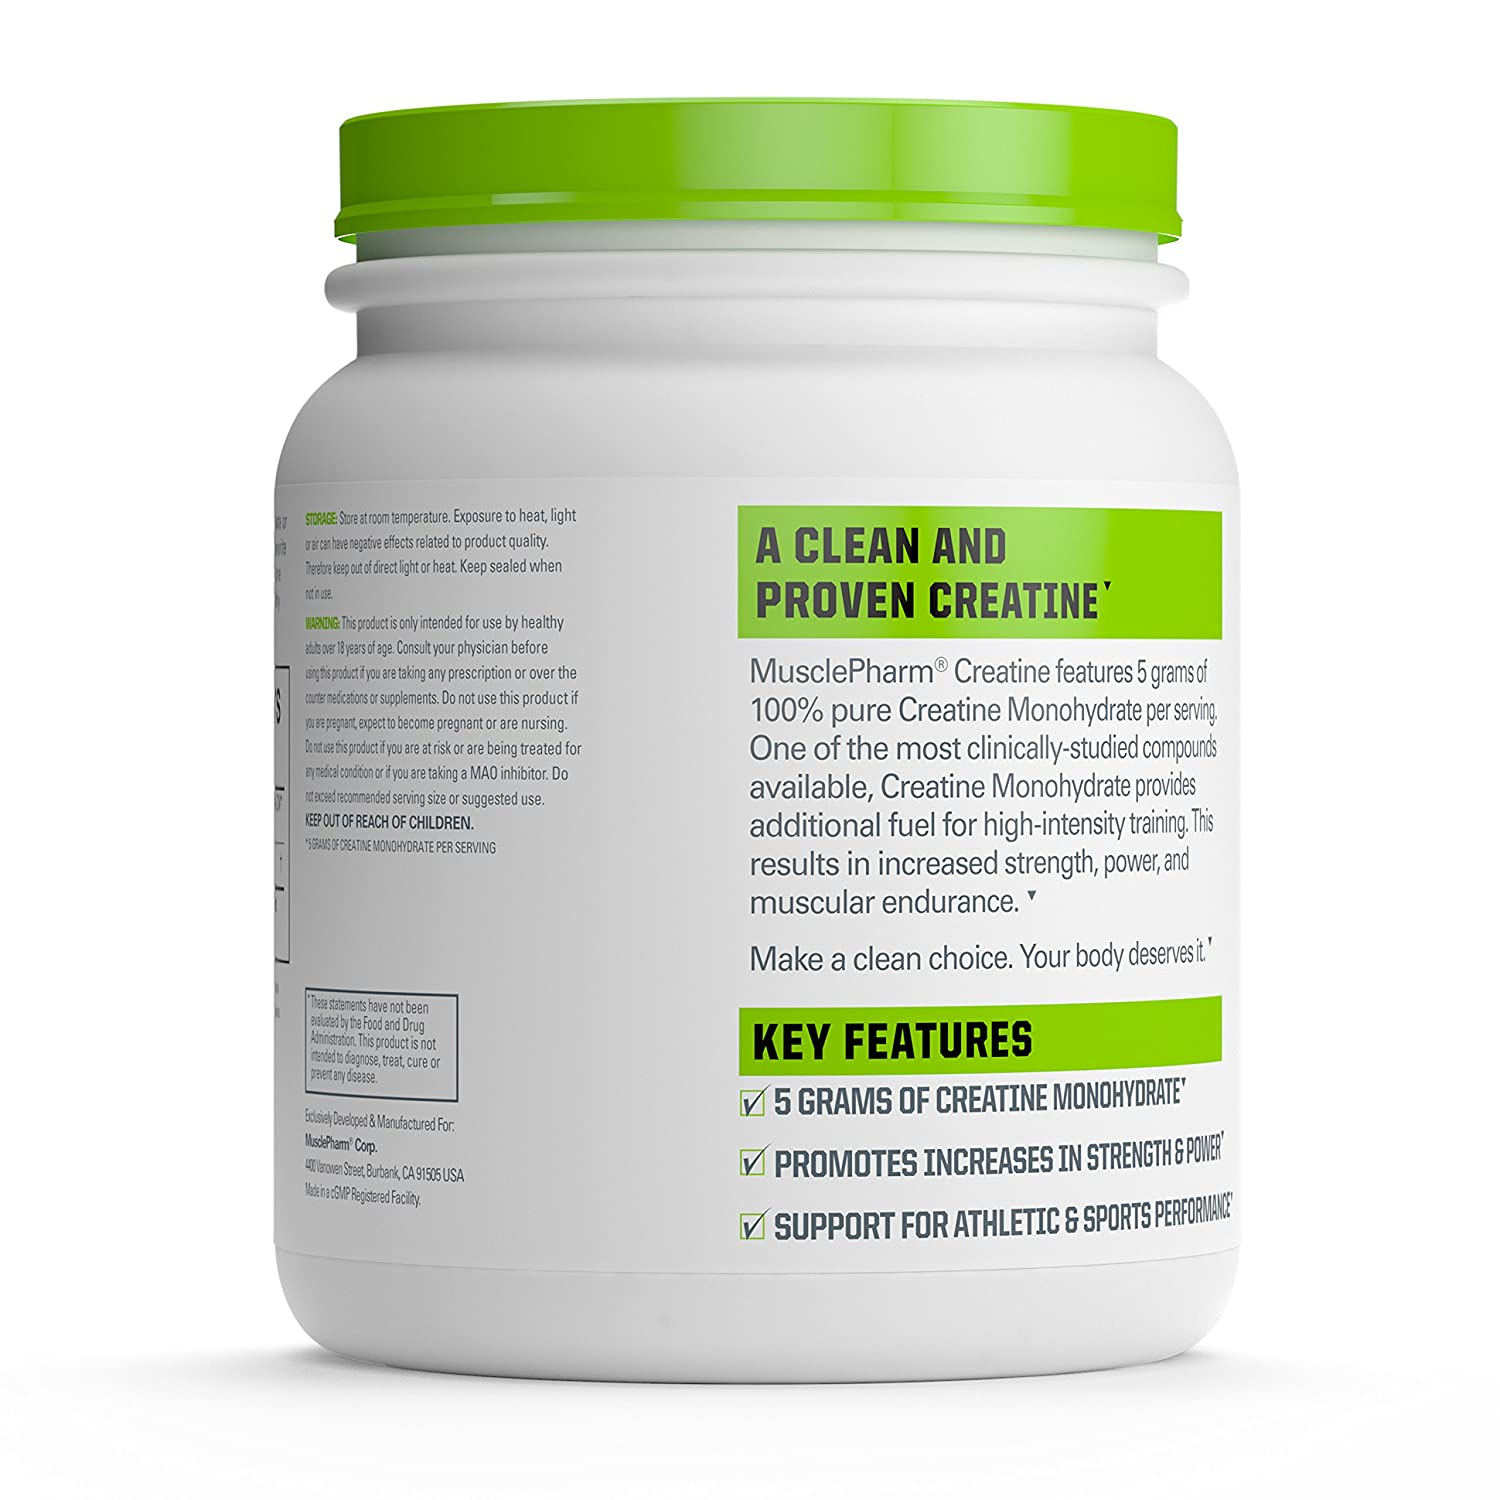 Amazon.com: MusclePharm Creatine, Ultra Pure 100% Creatine Monohydrate  Powder, Muscle Building and Recovery: Health & Personal Care